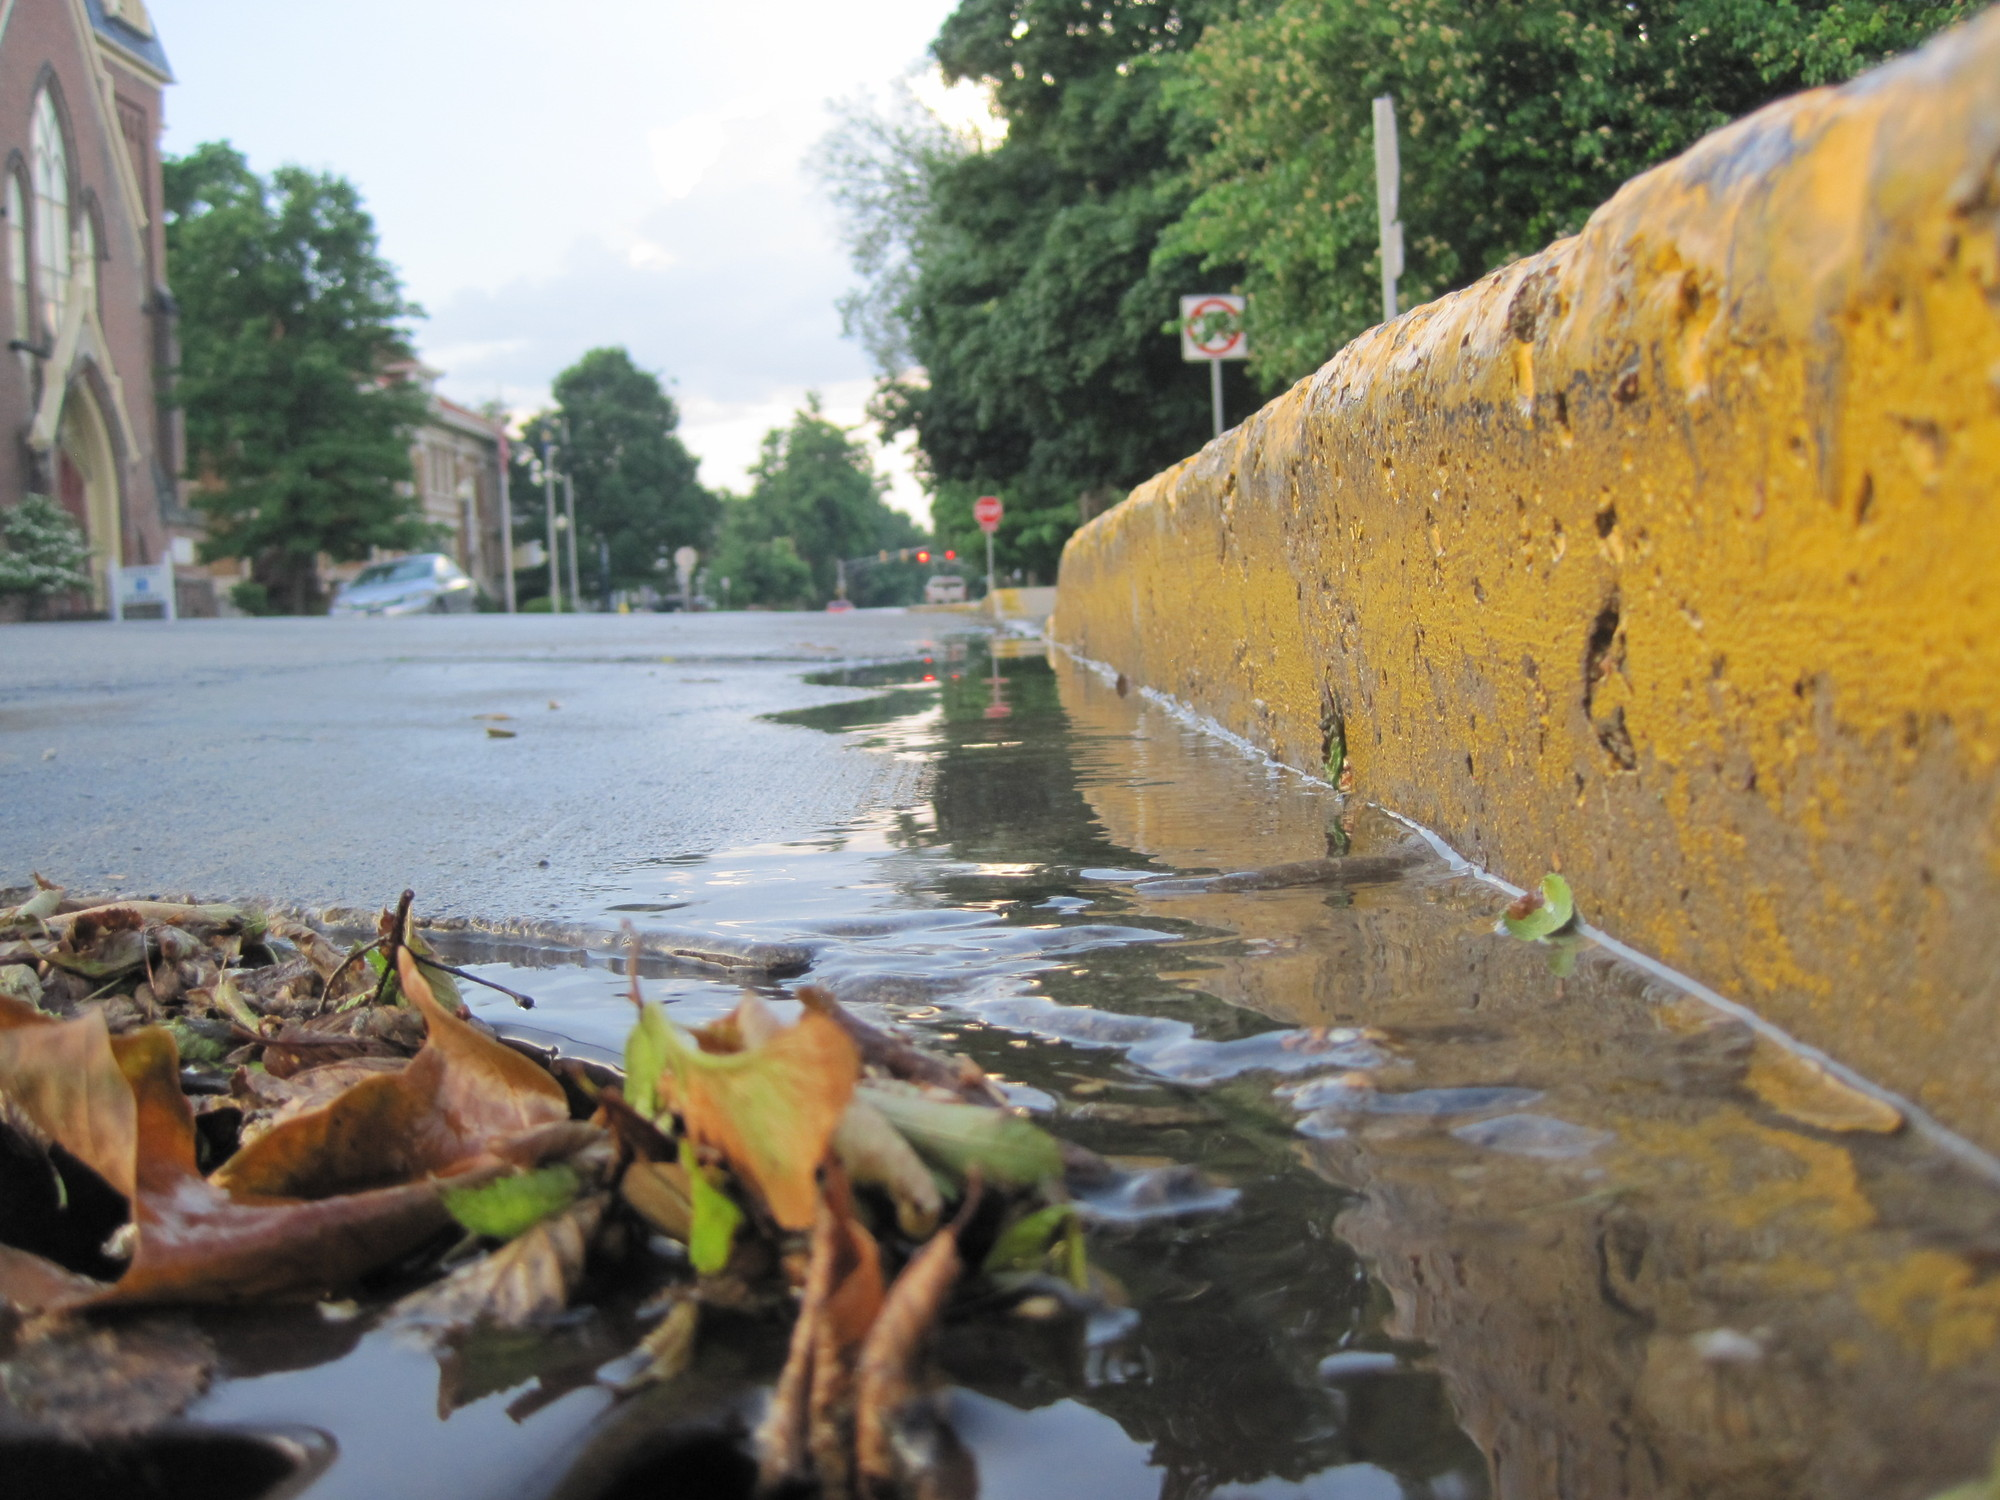 Summer rains flow into storm drains and out to our local waterways.